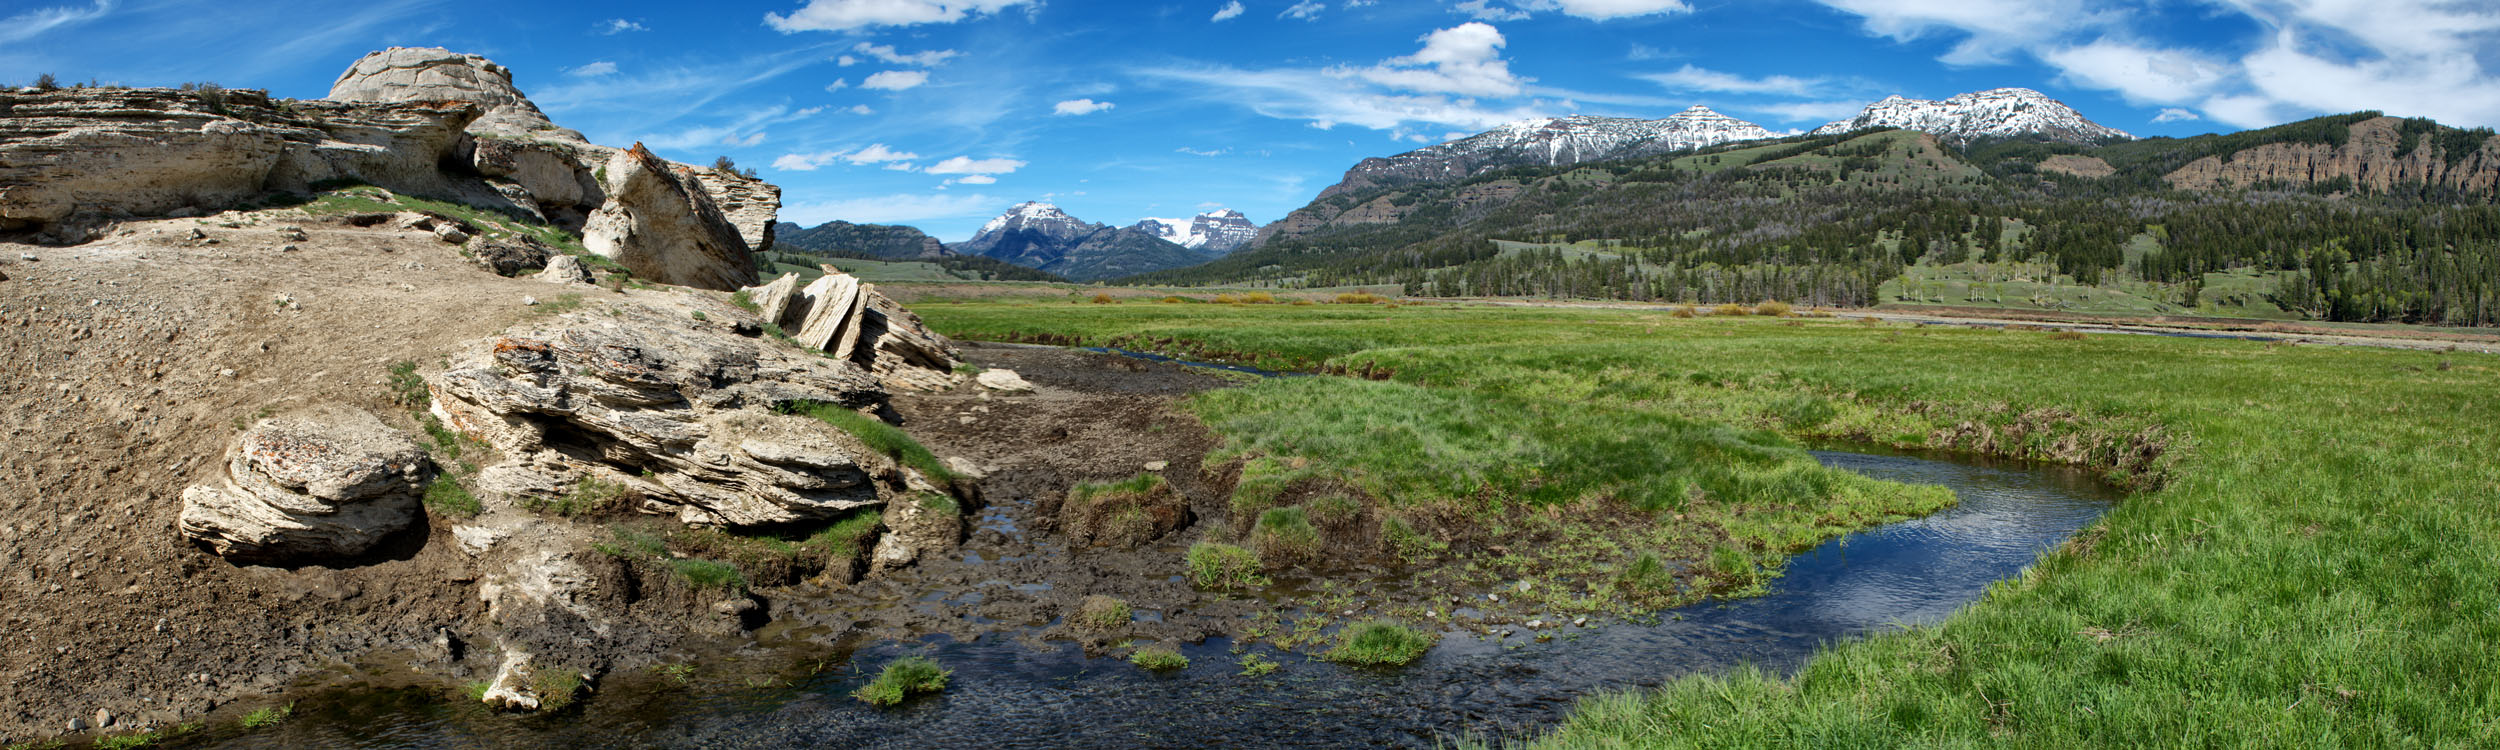 Soda Butte, Yellowstone